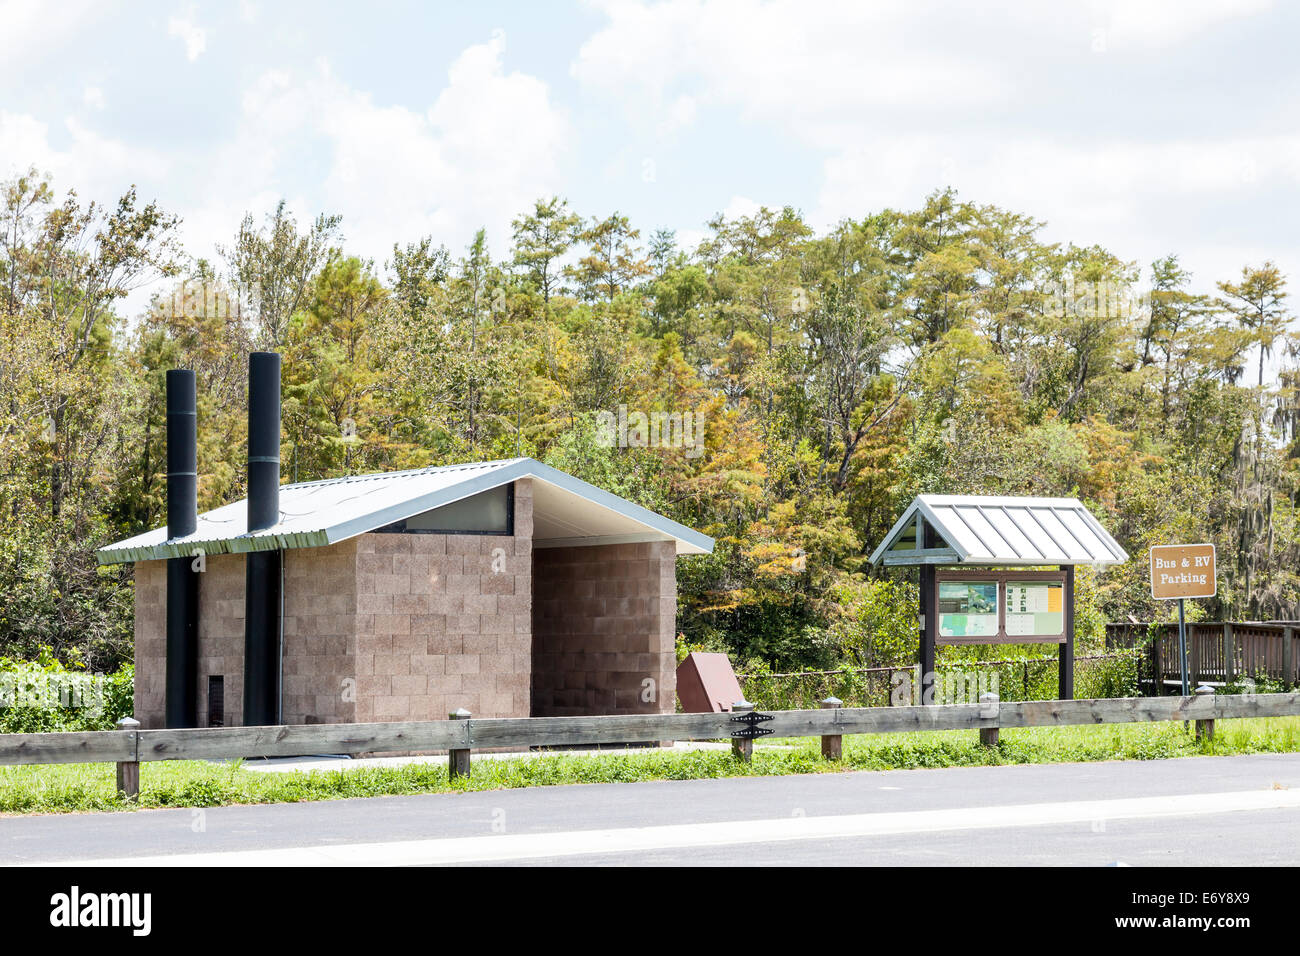 Composting toilet restrooms, rest area, bus and RV parking facilities in Big Cypress Wildlife Management Area in - Stock Image